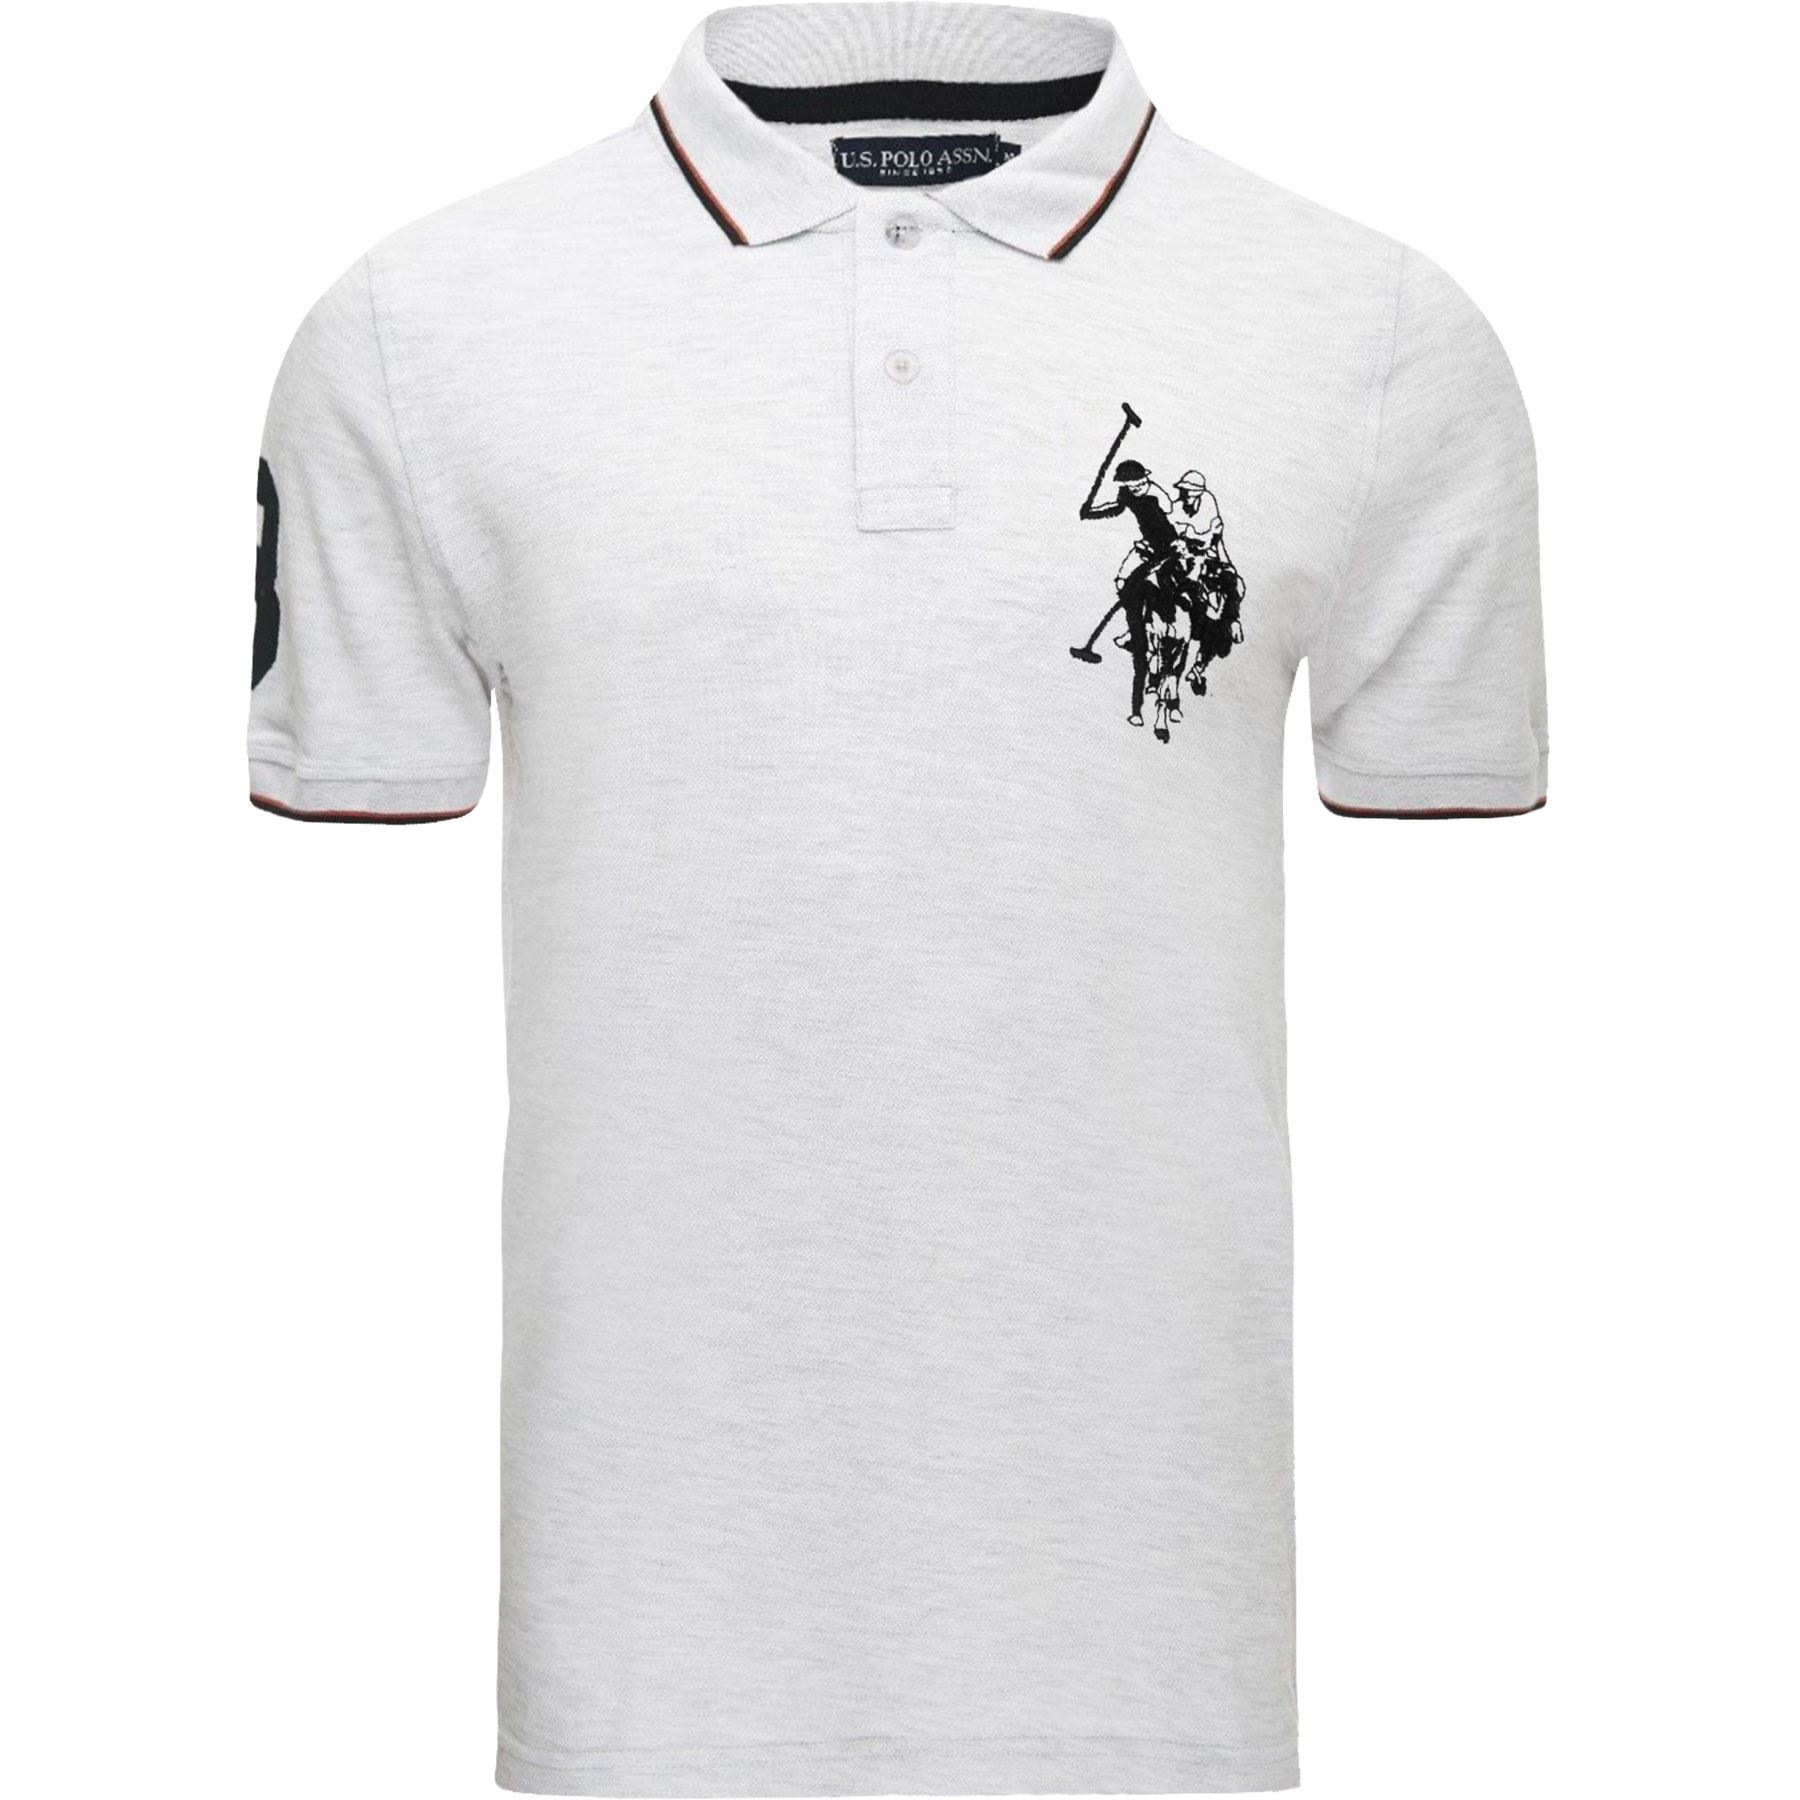 Mens polo us polo assn tshirt 2017 design top contrast for Polo t shirt design images